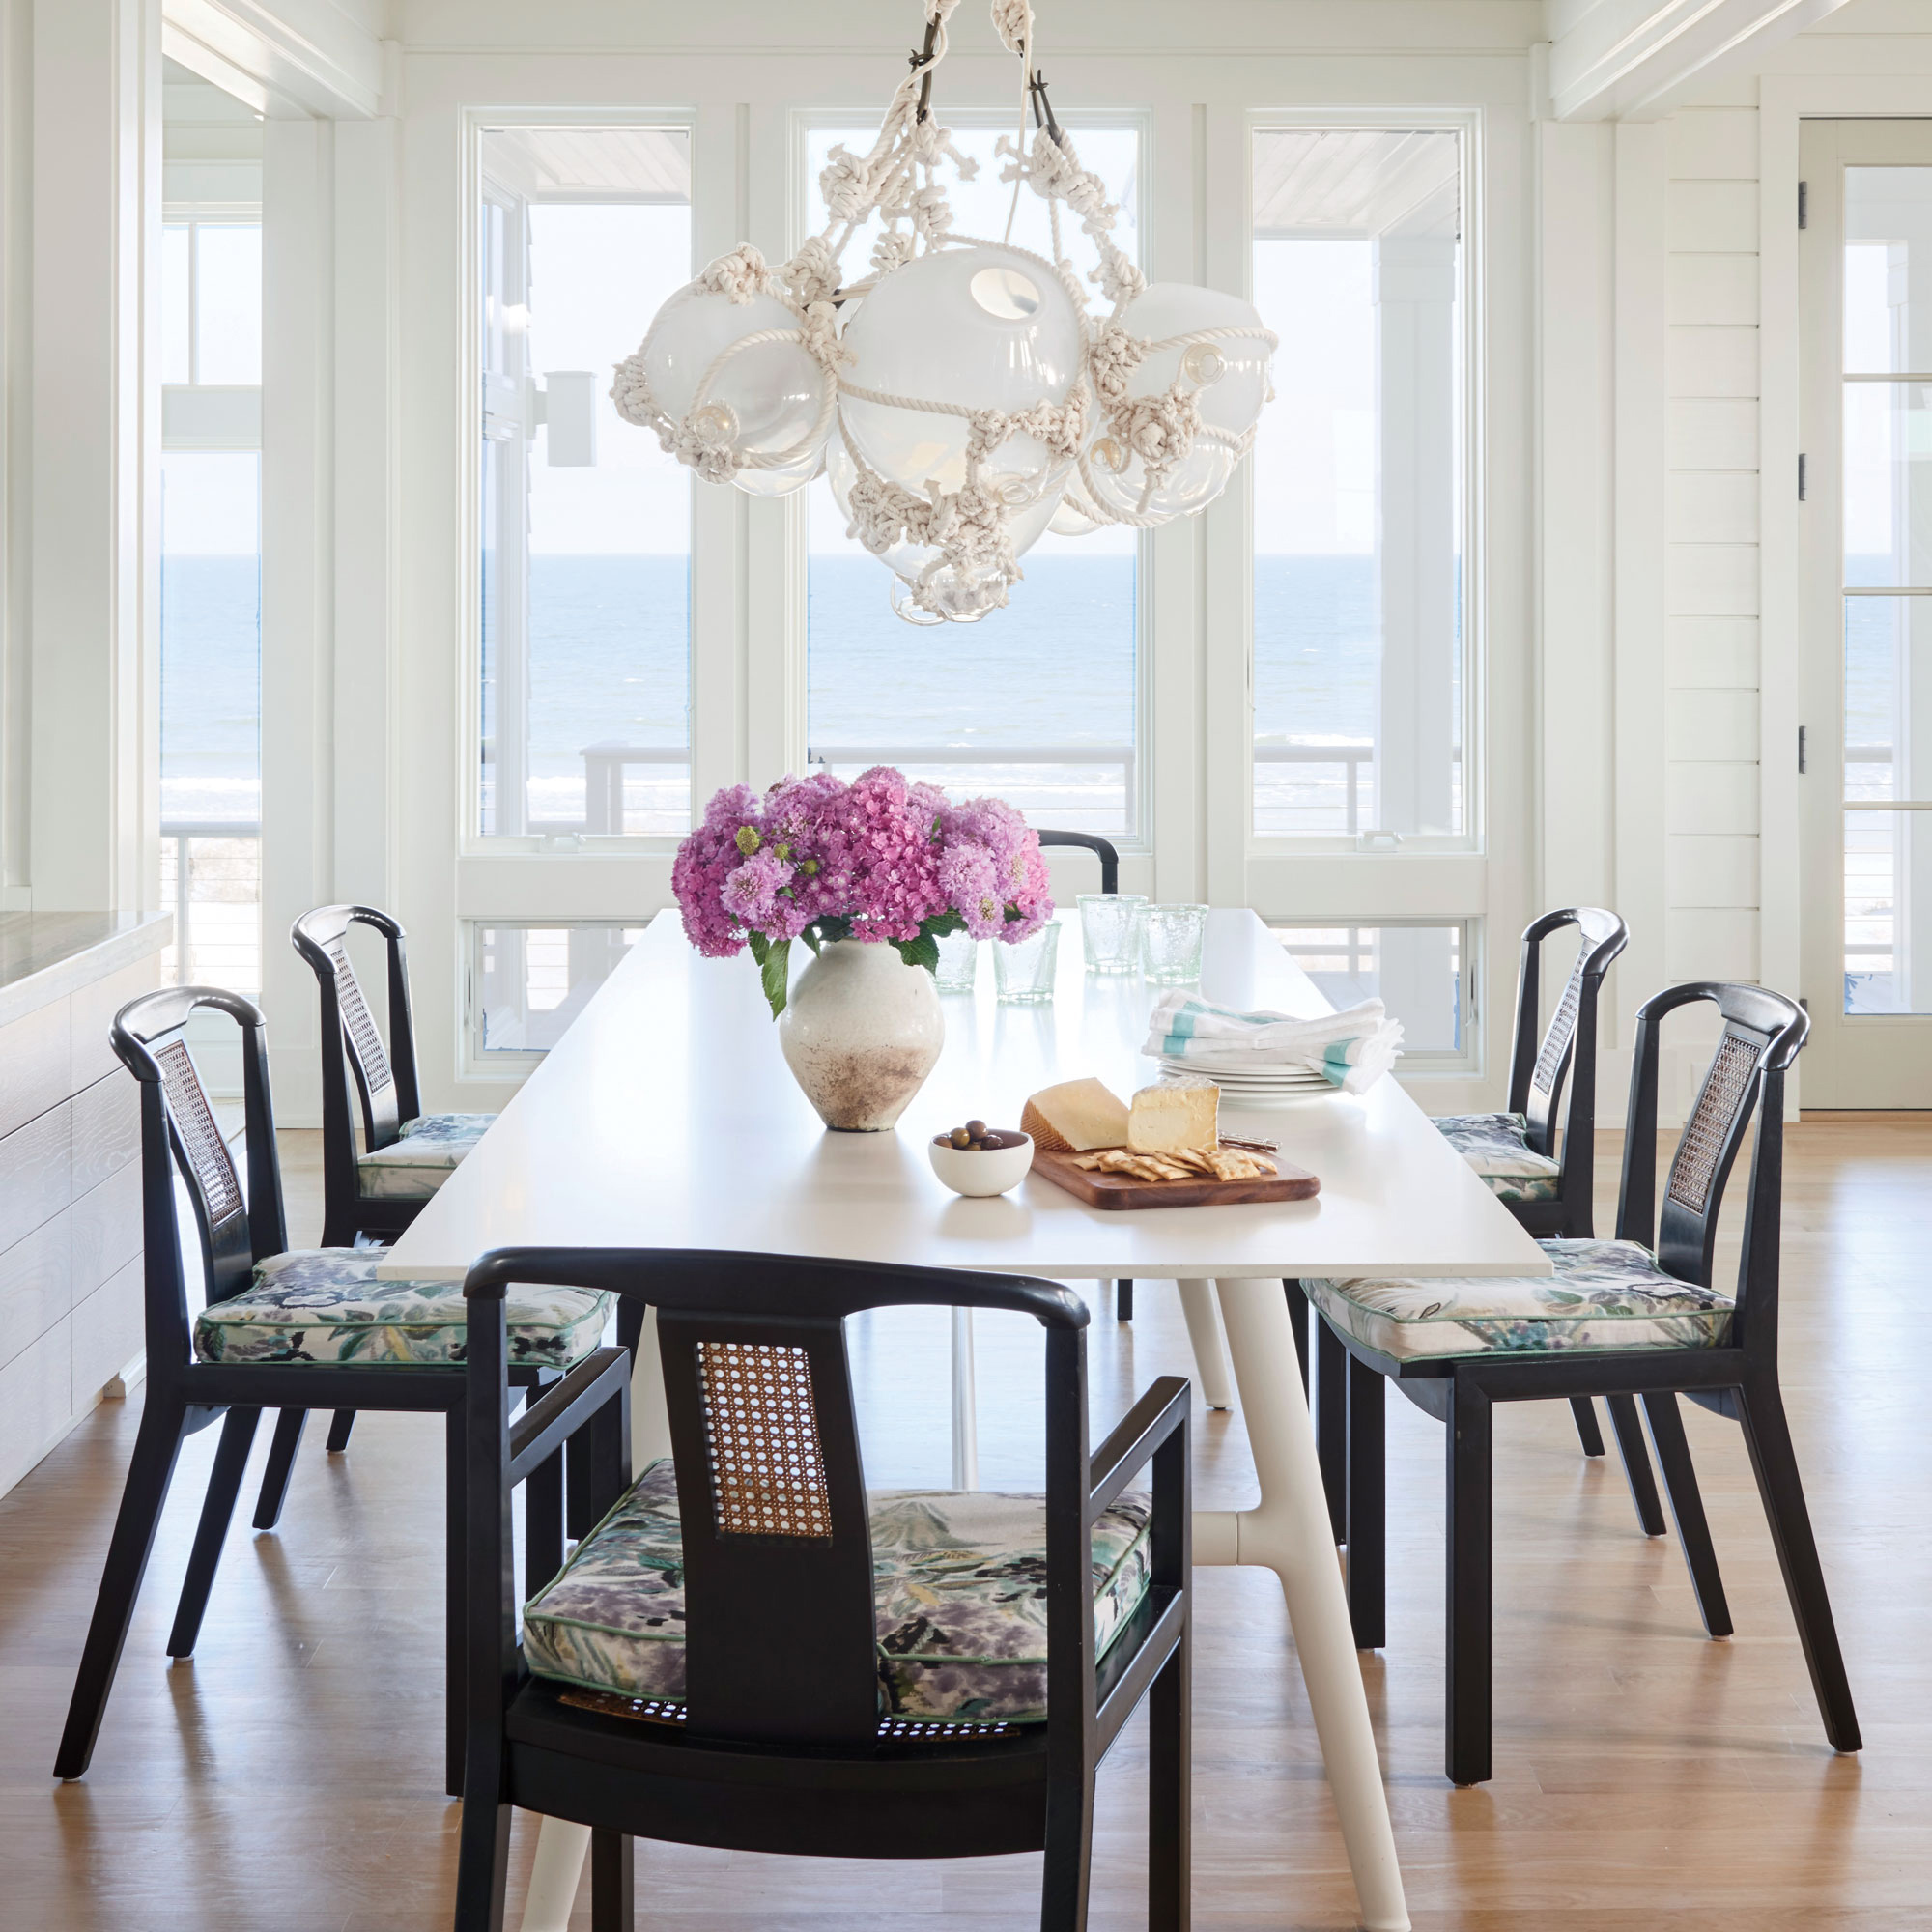 A predominantly white color palette gets its kicks from ebony chairs with cushions upholstered in jewel-tone florals. A sculptural glass-float chandelier by Lindsey Adelman brings in depth and texture without adding competing colors or patterns.                              Idea Spotlight                             Maintain a low profile. In this Figure Eight Island, North Carolina, dining room, vintage splat-back chairs and a leggy, modern table keep all eyes on the ocean views.